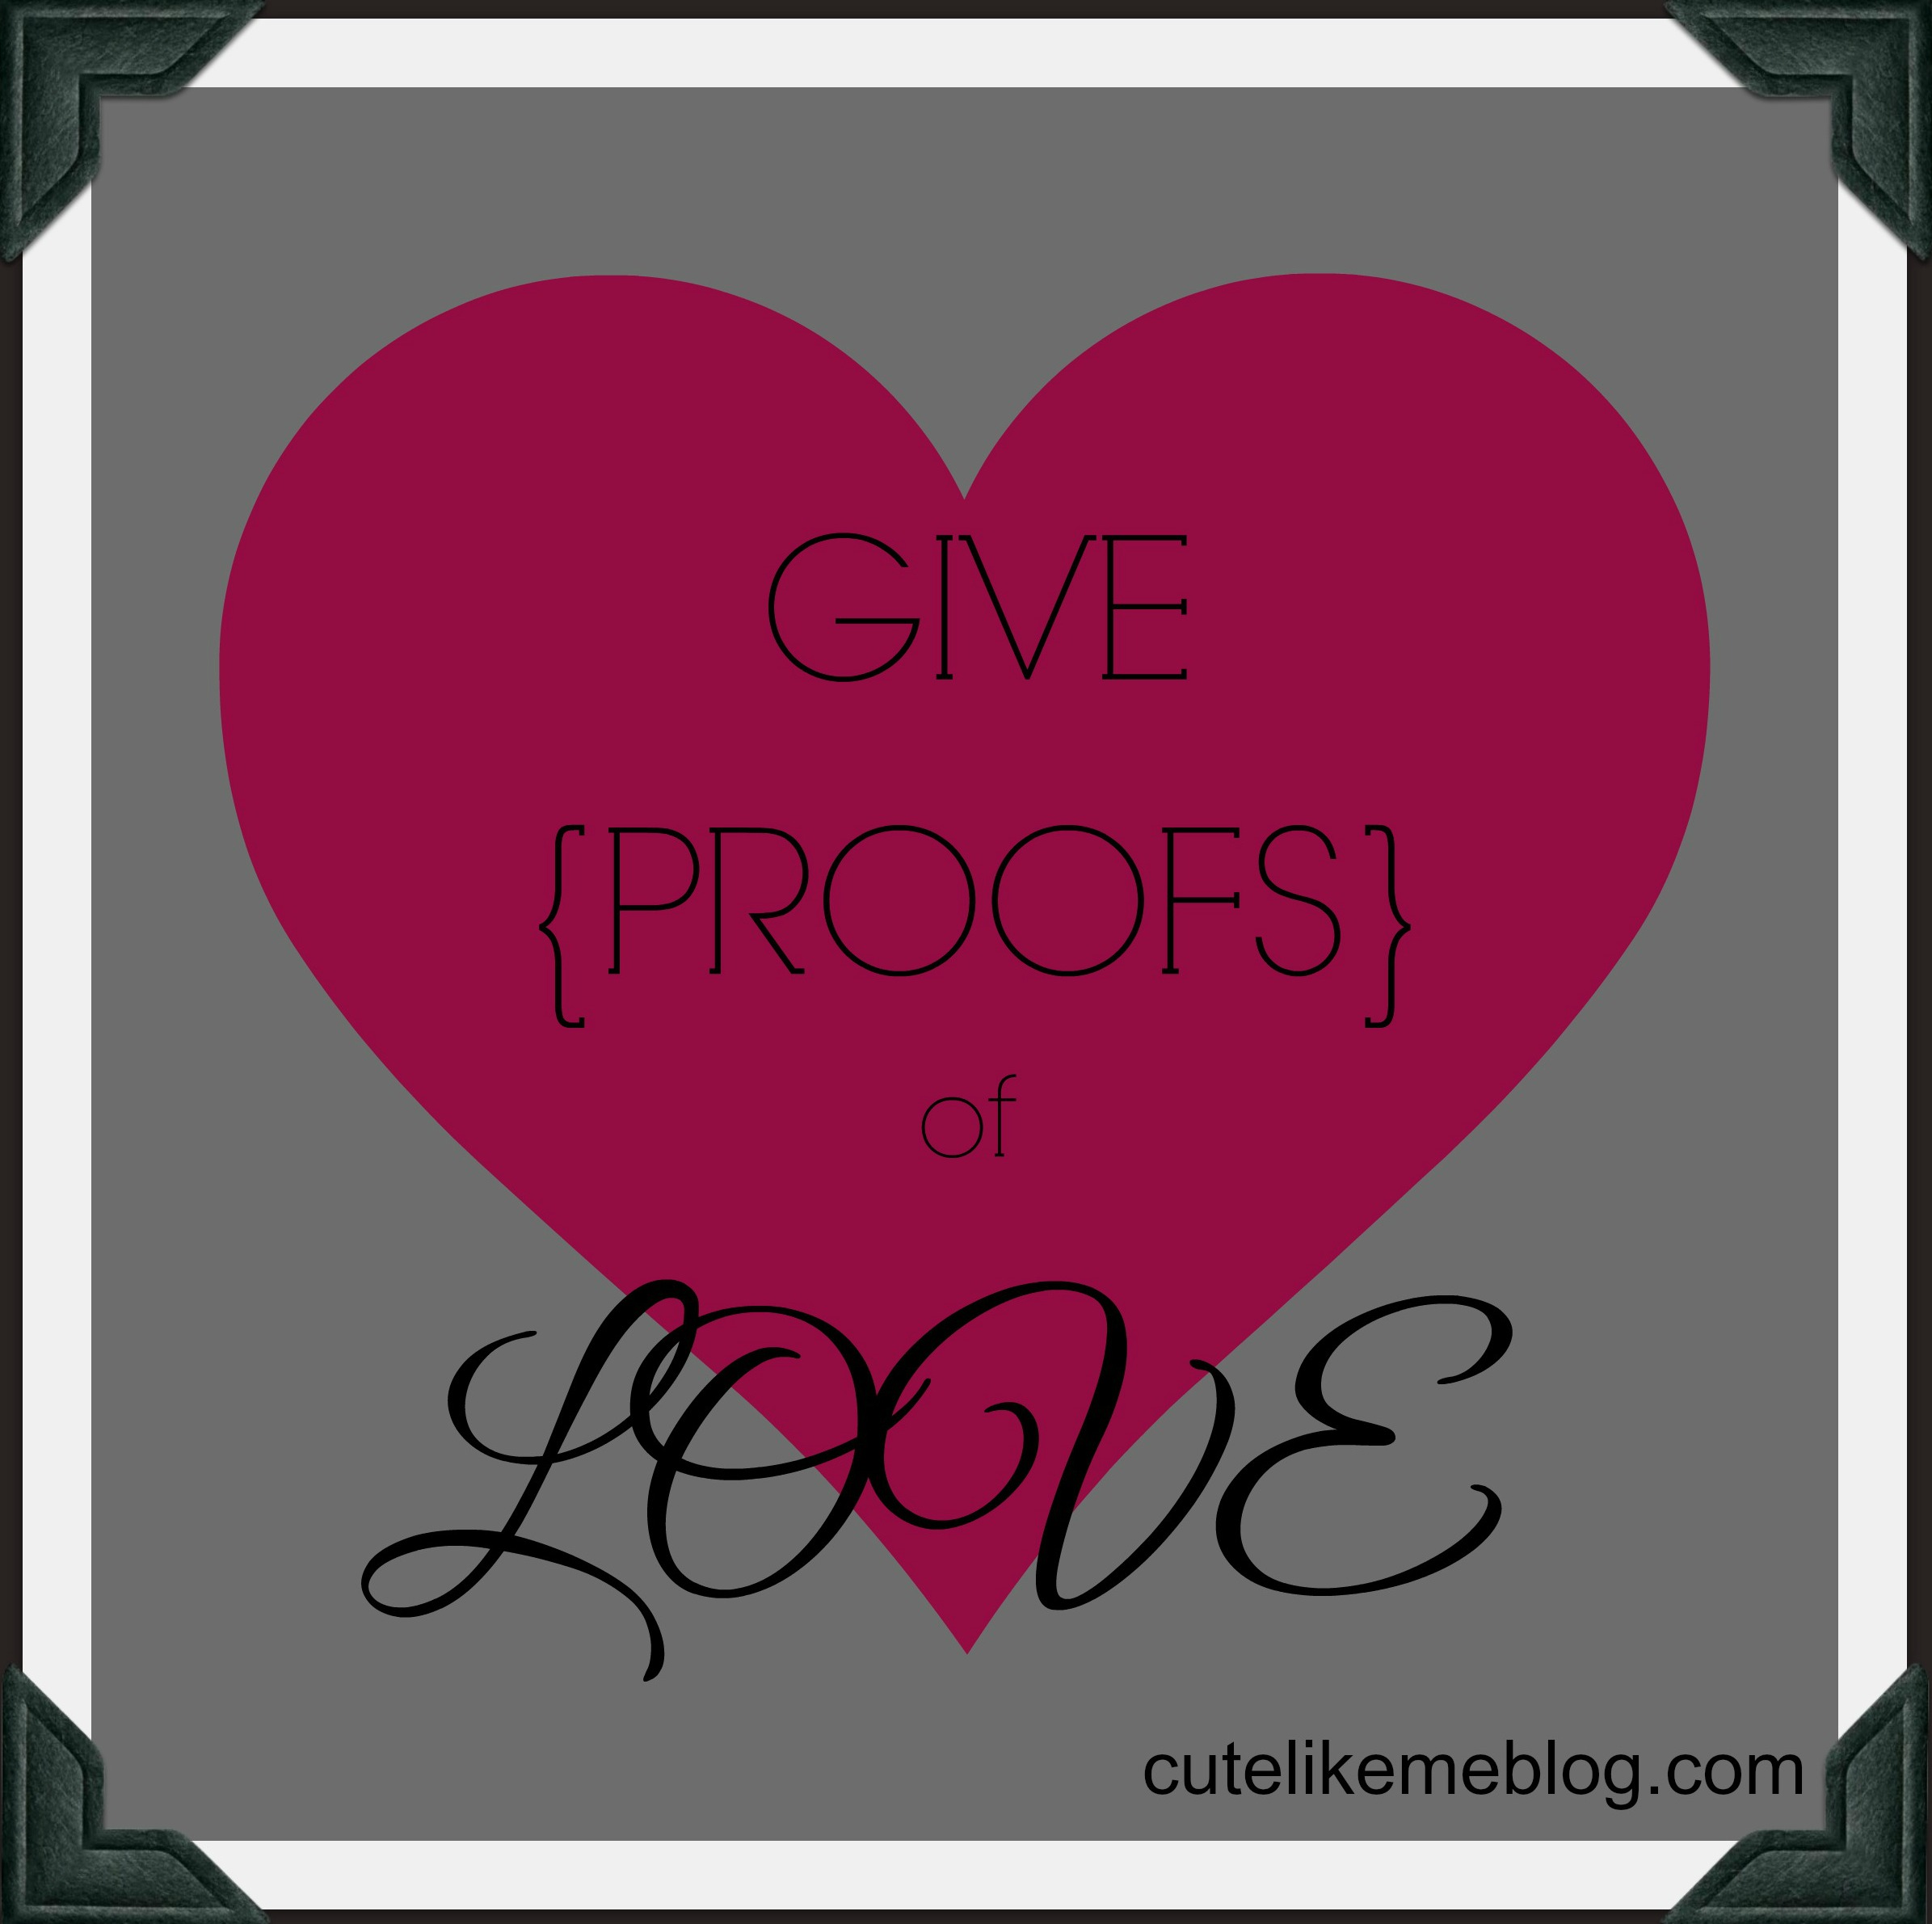 Give Proofs of Love happiness project cute like me these are the days